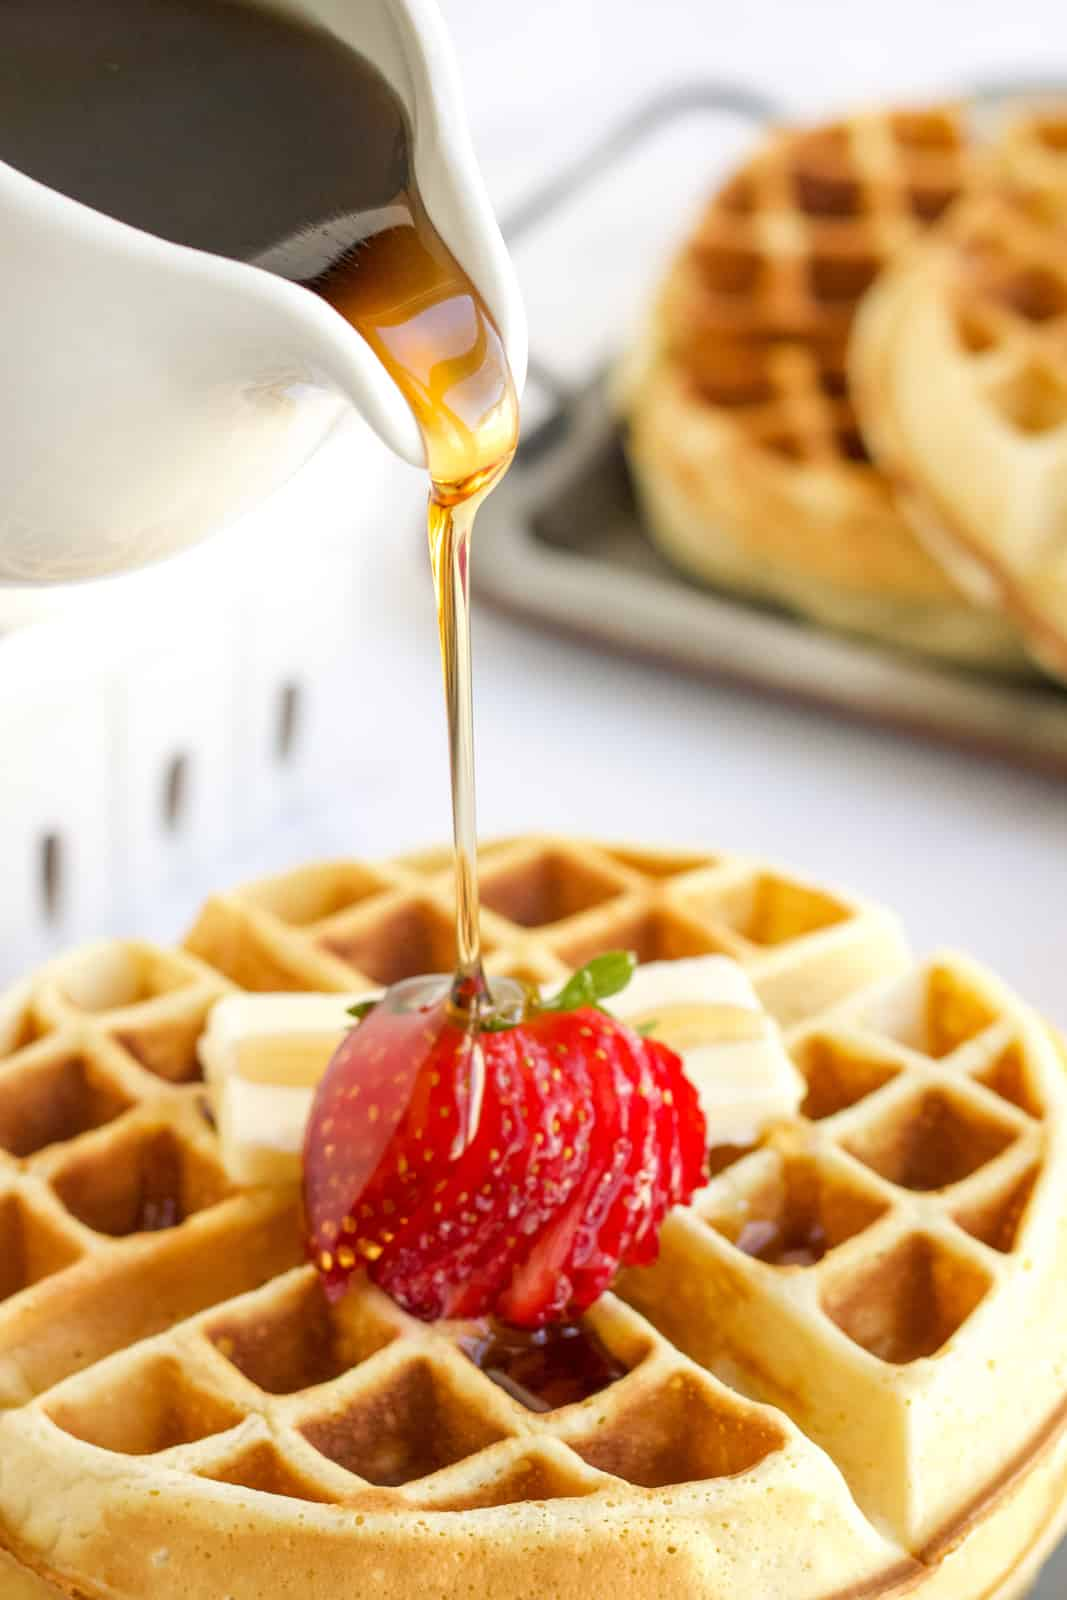 Syrup being poured over Belgian Waffle Recipe